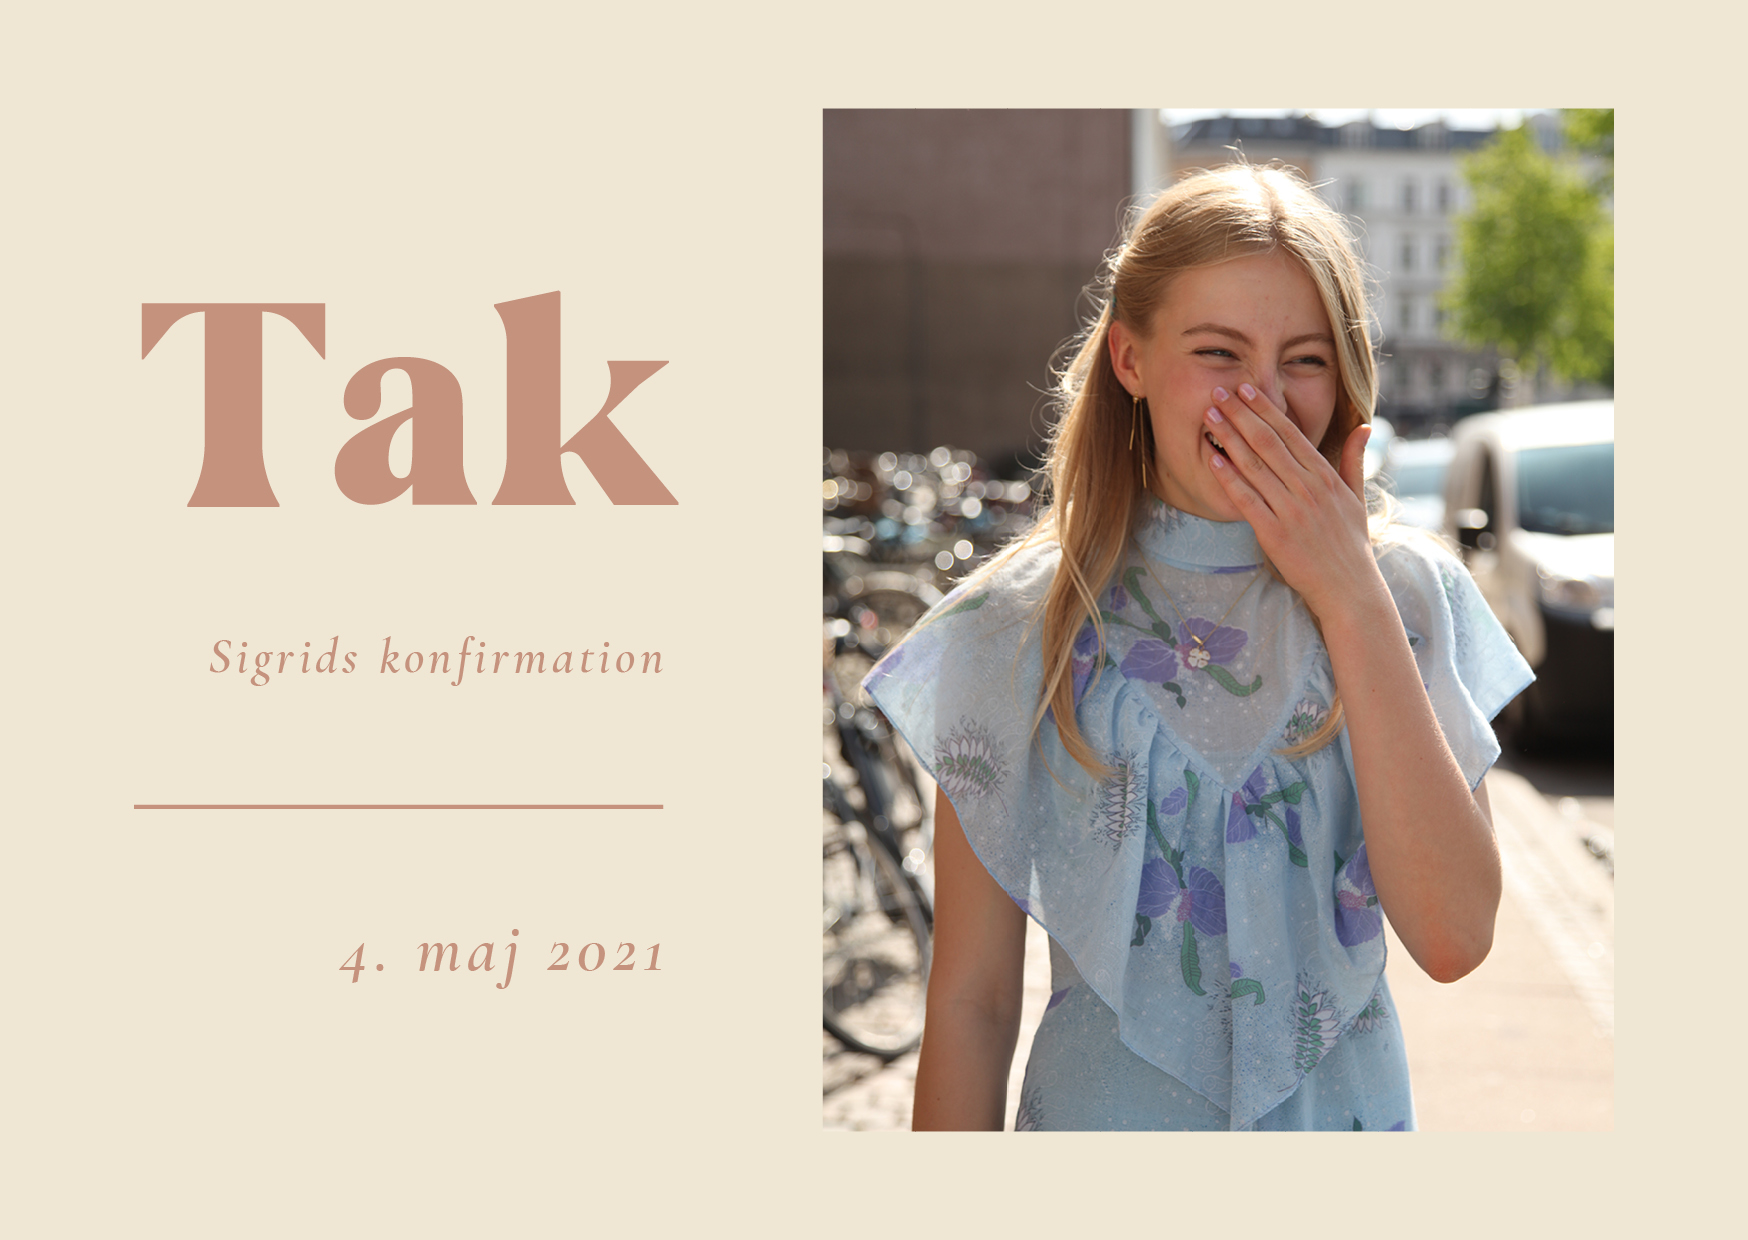 /site/resources/images/card-photos/card-thumbnails/Sigrids konfirmation Takkekort/d0b4174f6429030f67a03ba6d2824529_front_thumb.jpg